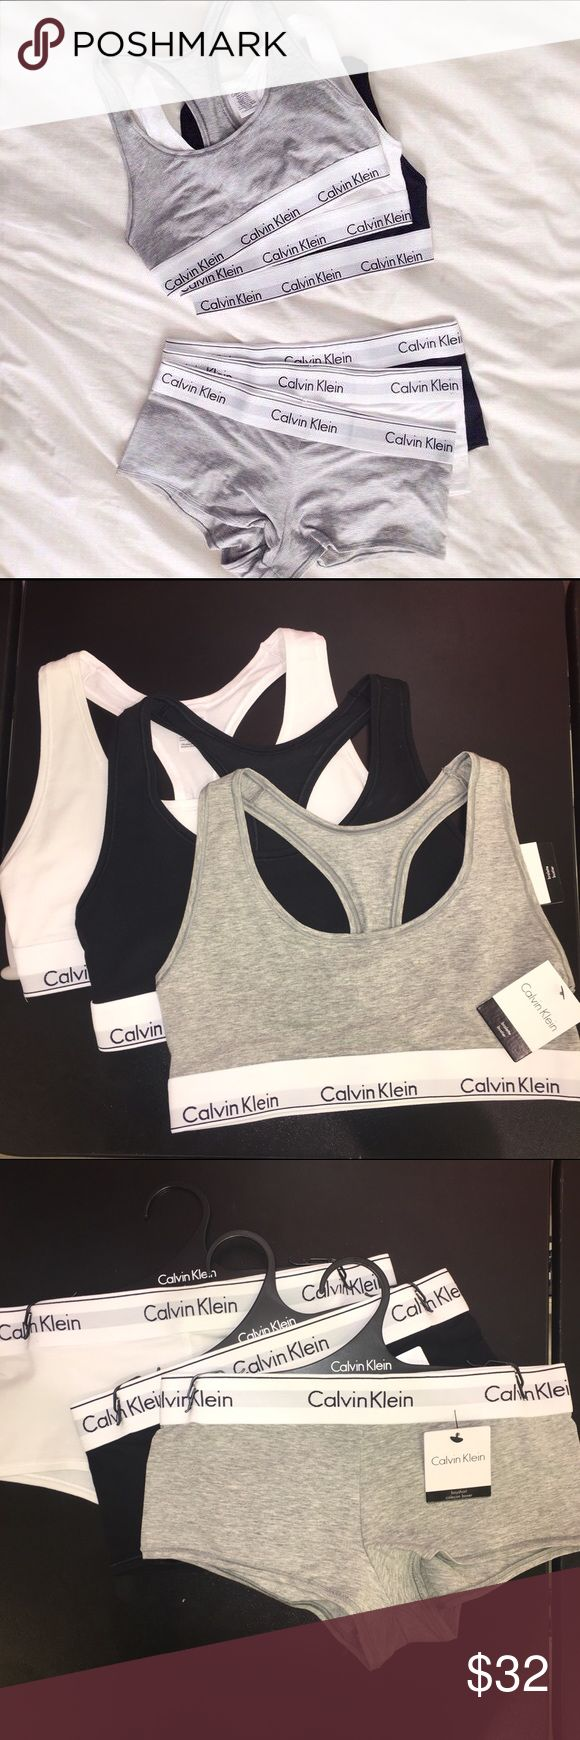 Calvin Klein Bralette and BoyShort Underwear Set Pick your color! Black, white, or gray Calvin Klein sports bra and boy short panty set. All are brand new, with tags attached. Absolutely no flaws whatsoever! All sizes available in each, extra small, small, medium, large, and extra large. Super soft cotton material; sleep in it, work out in it, or lounge! Calvin Klein Intimates & Sleepwear Panties